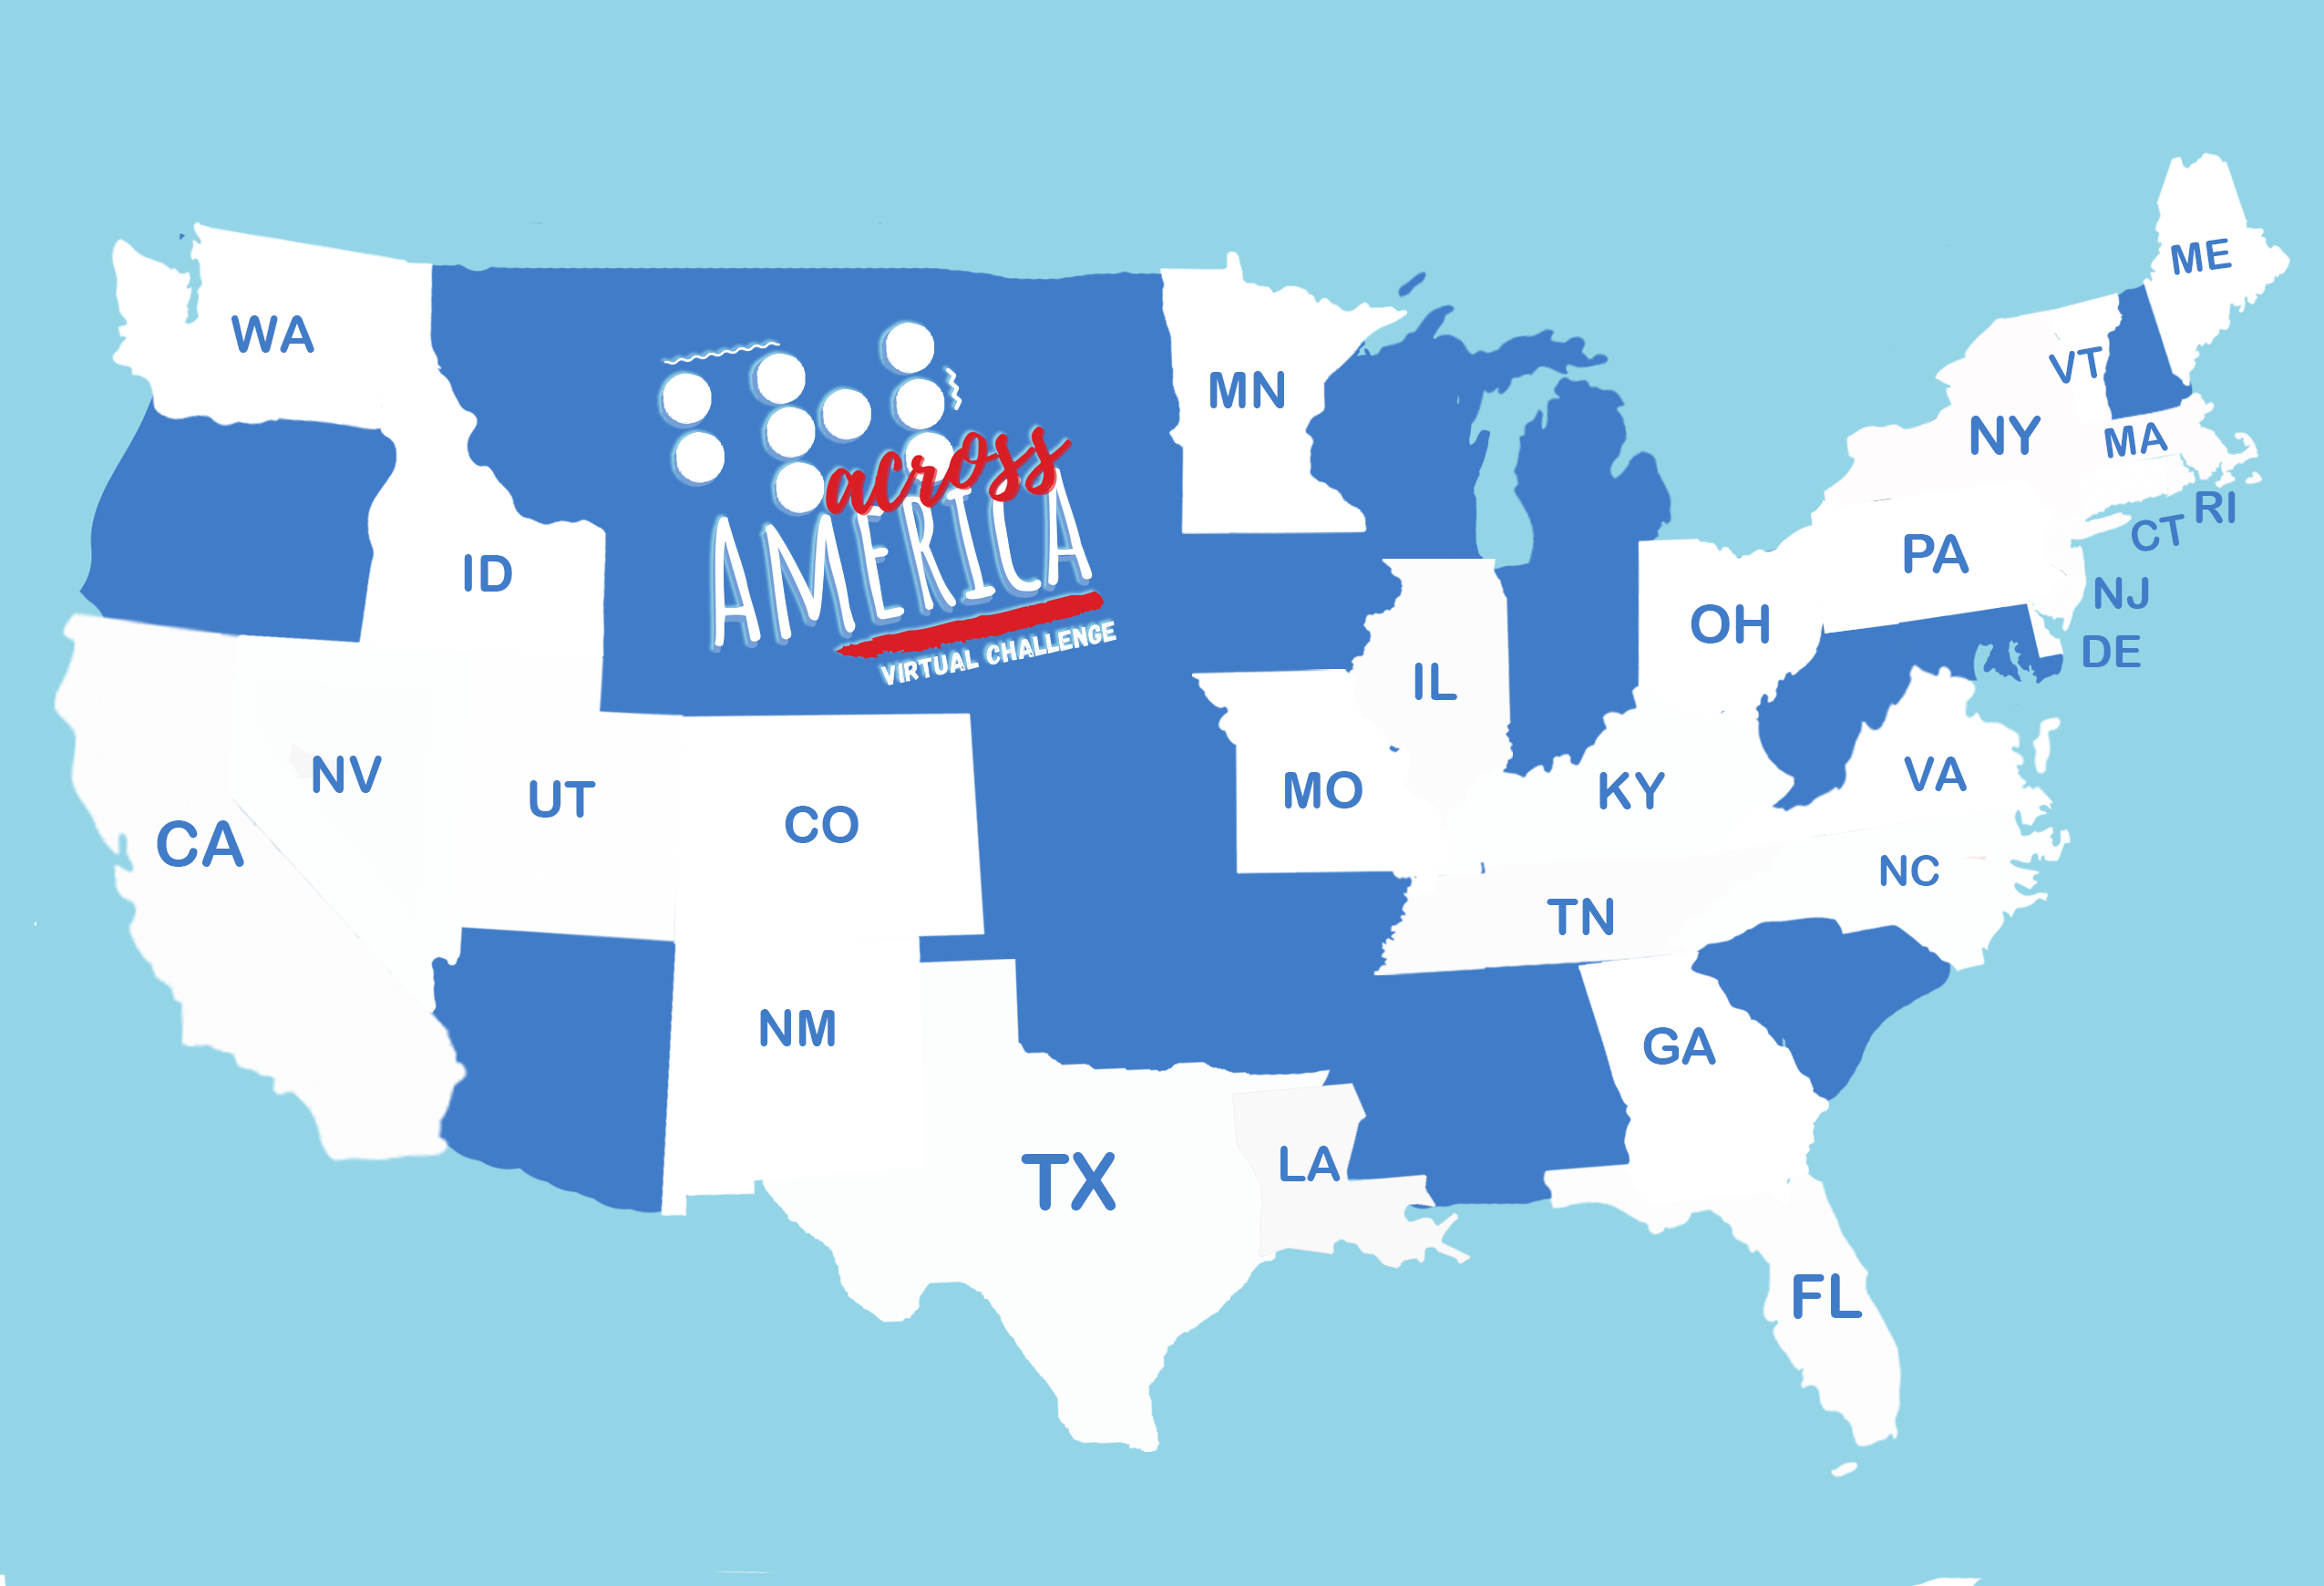 Blue on Blue Braille Across America Logo Map with Participating States highlighted in white.